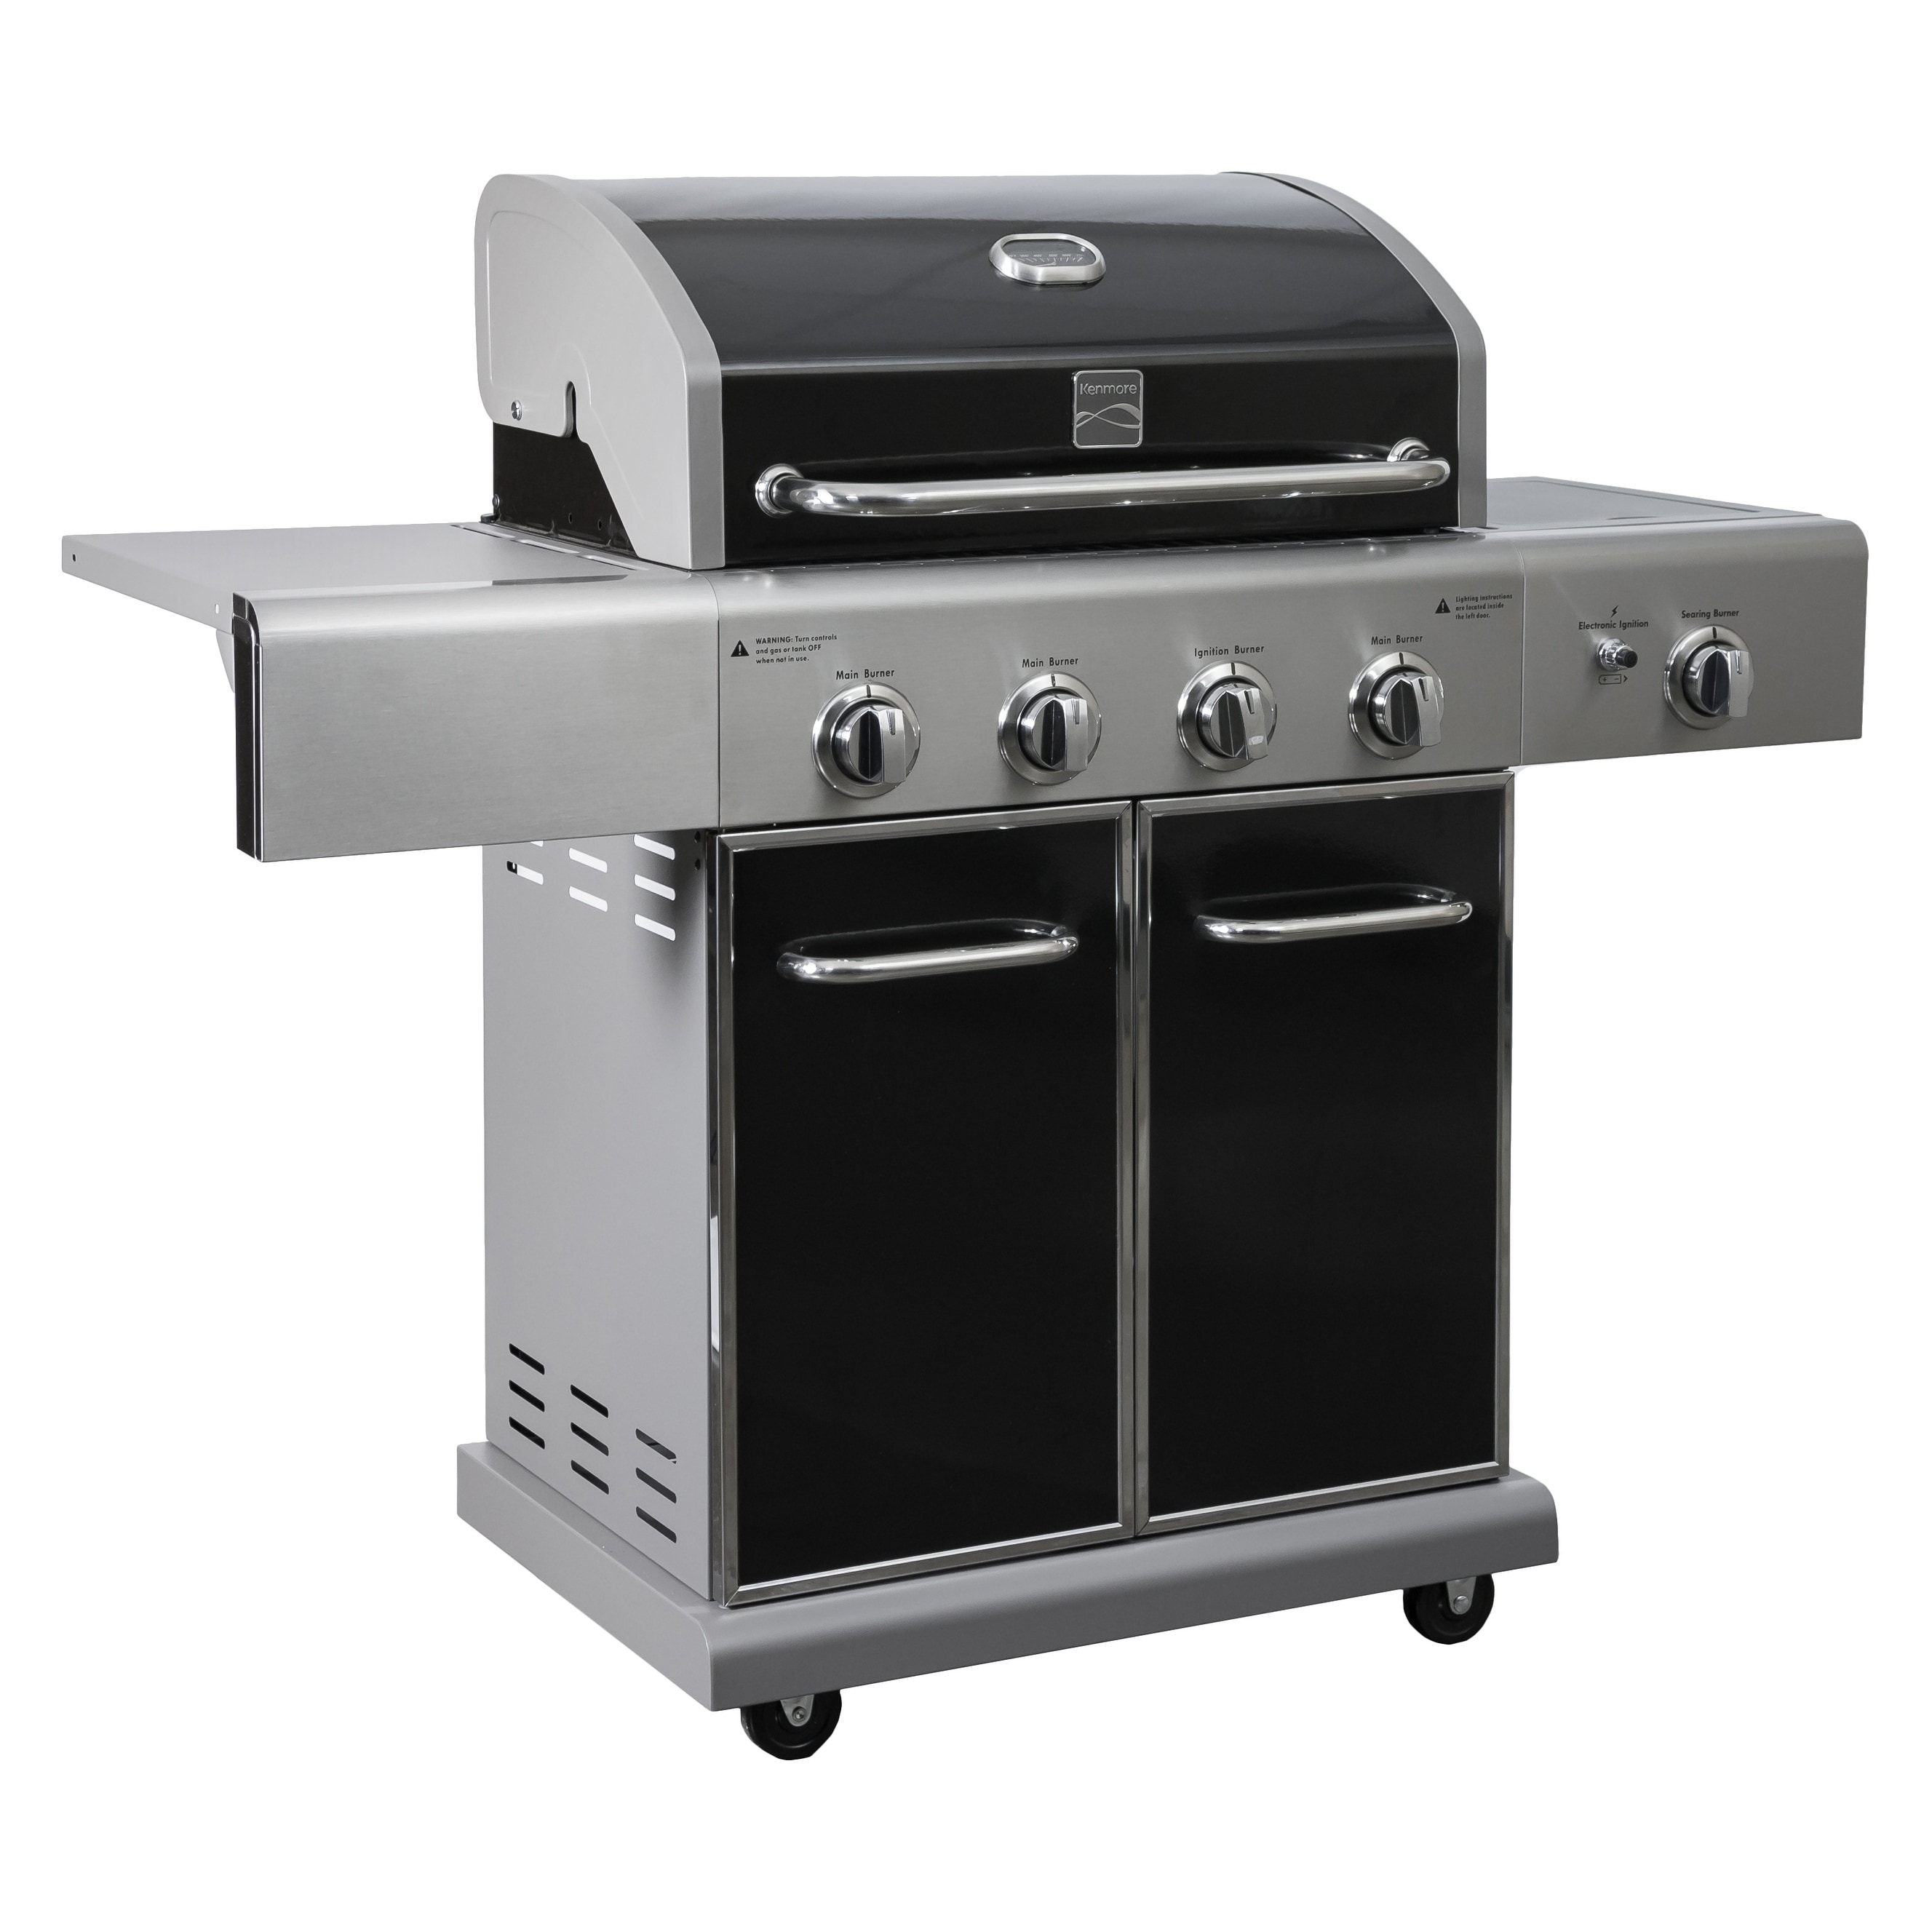 model coyote living open grill electric stainless cart pedestal product optional steel island outdoor